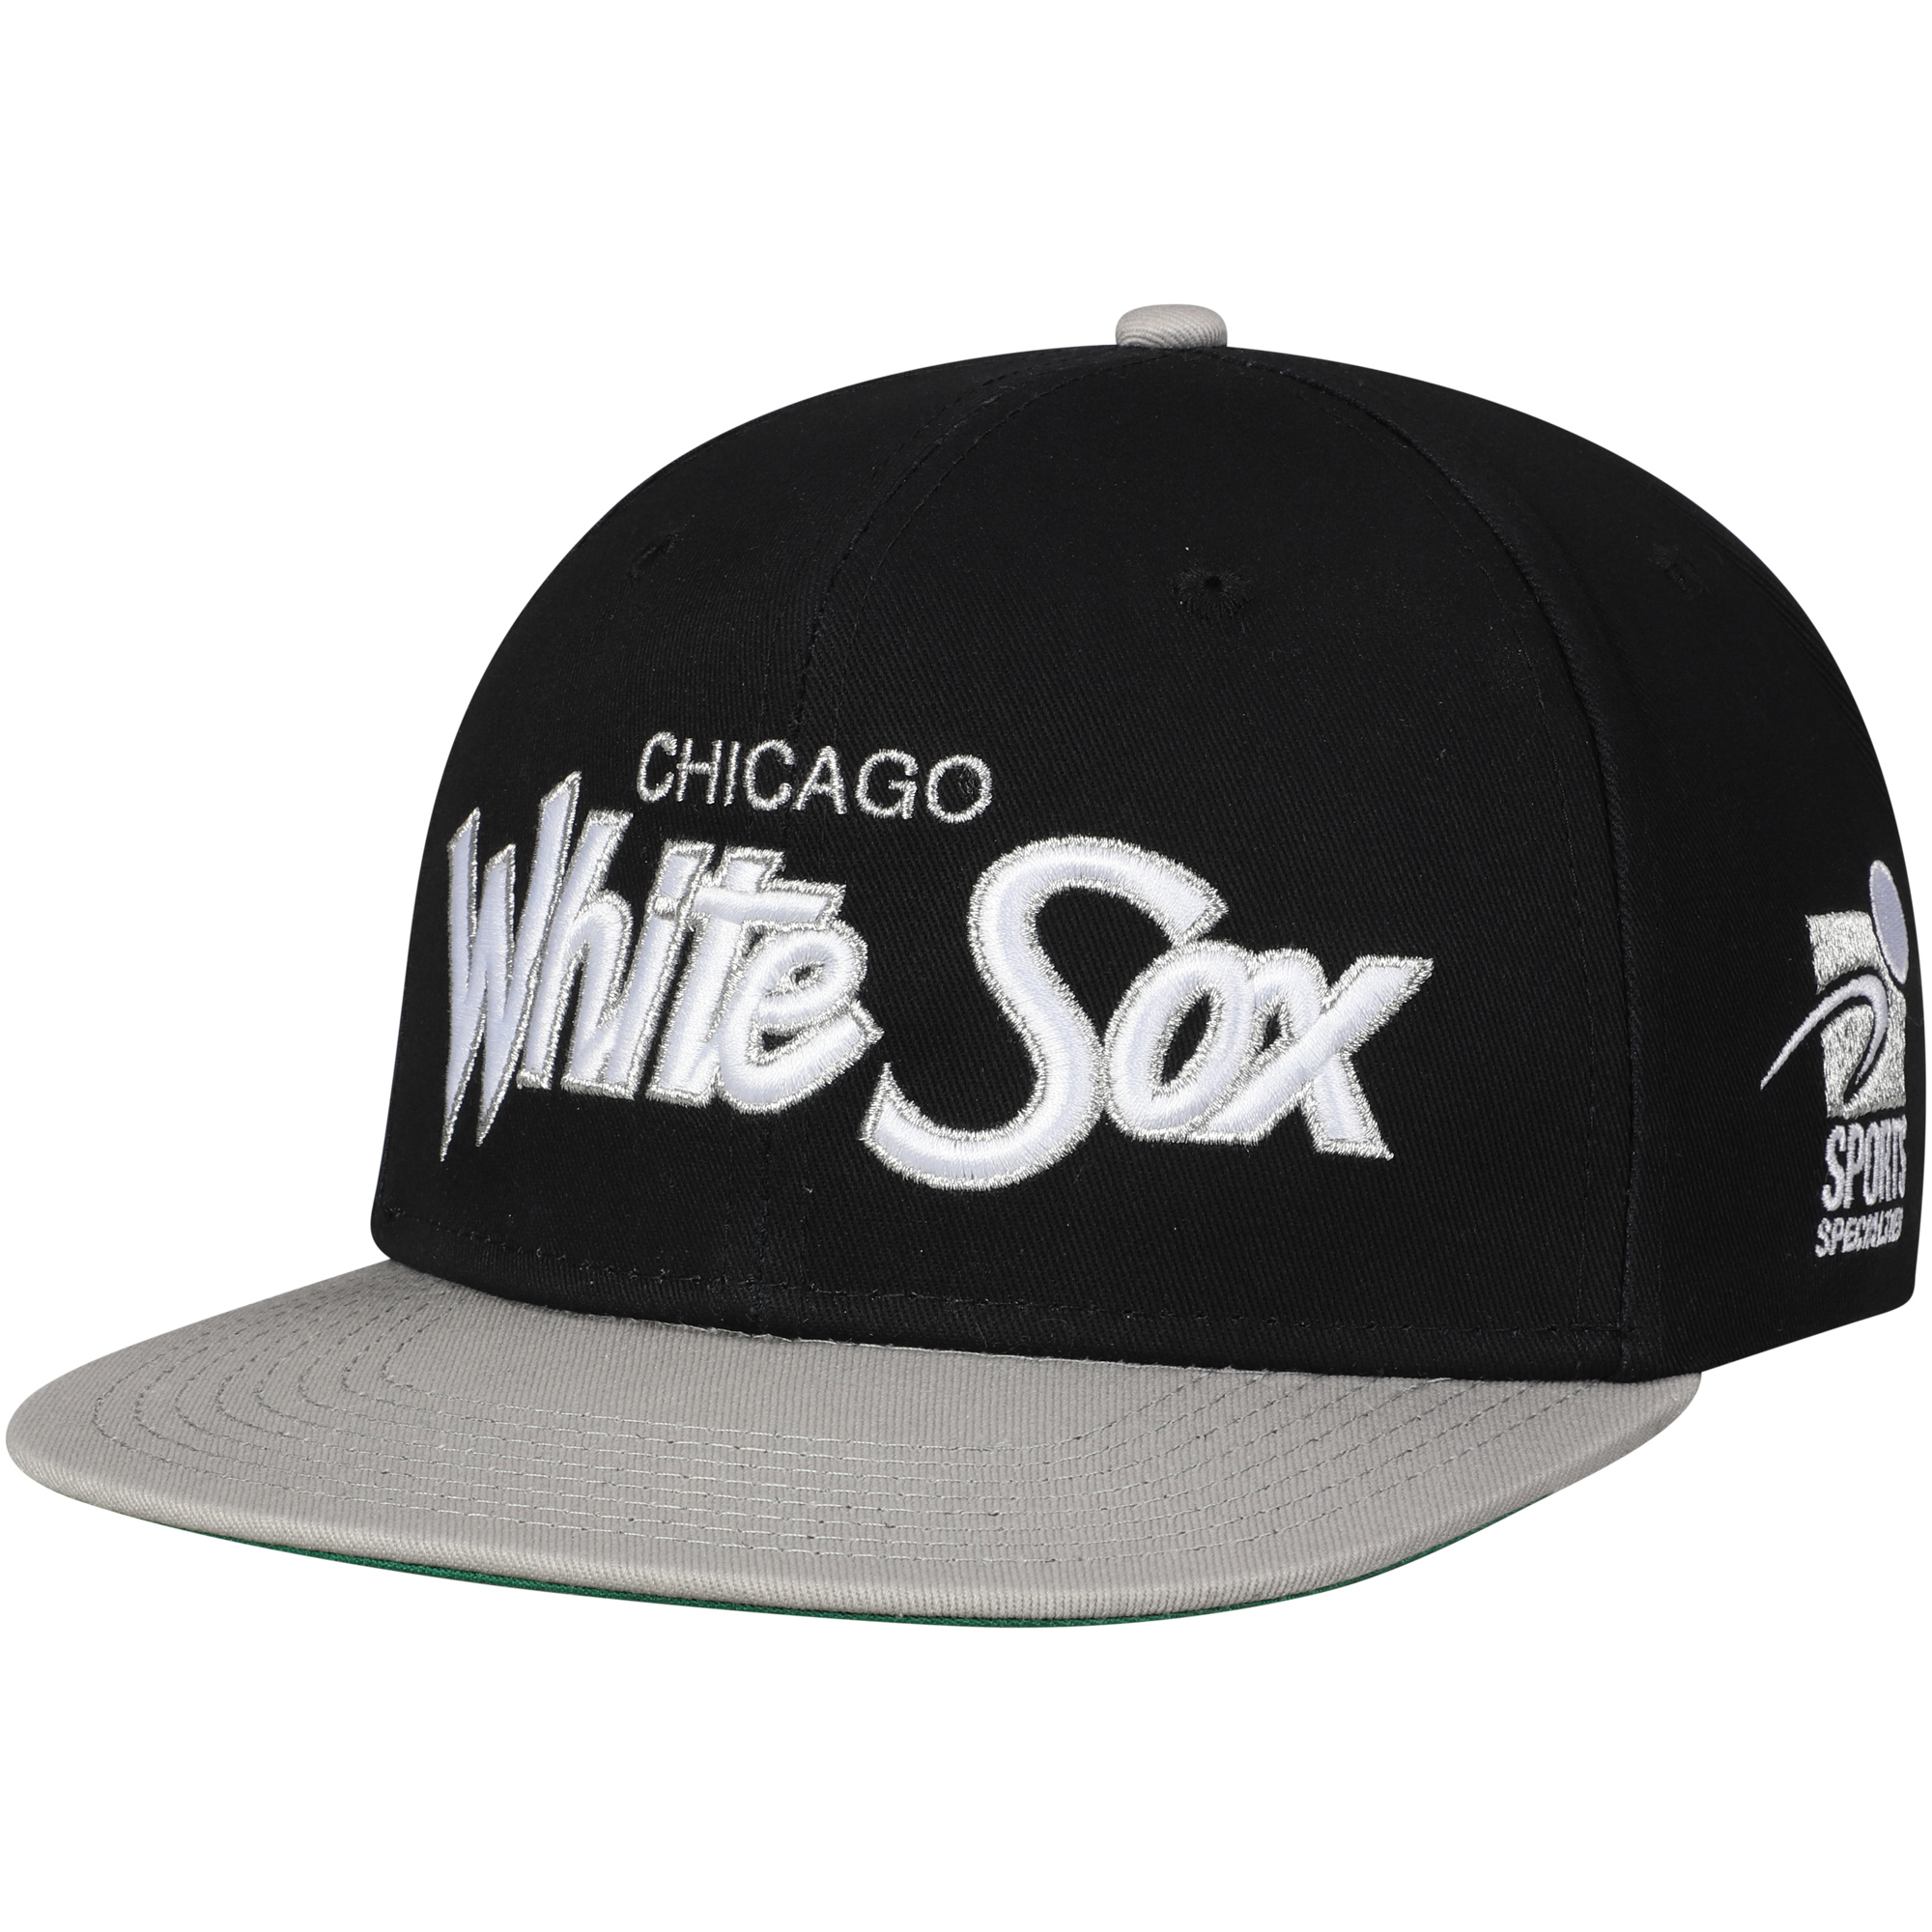 big sale 5e02b ab341 ... netherlands product image chicago white sox nike pro cap sport  specialties snapback adjustable hat black osfa